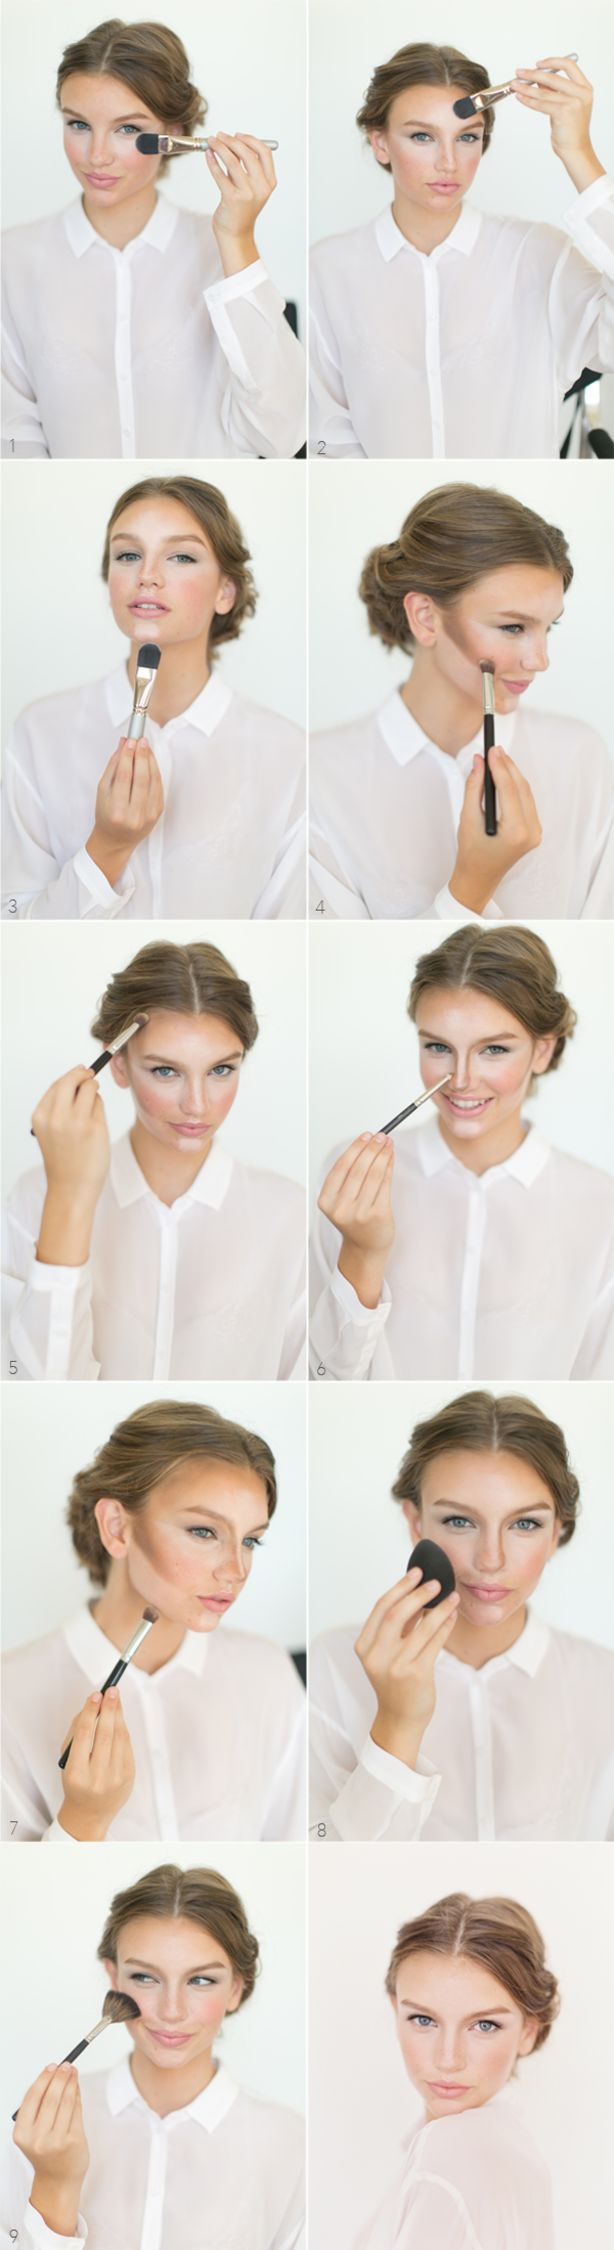 basic make-up tips met Engelse uitleg van een professionele  visagiste